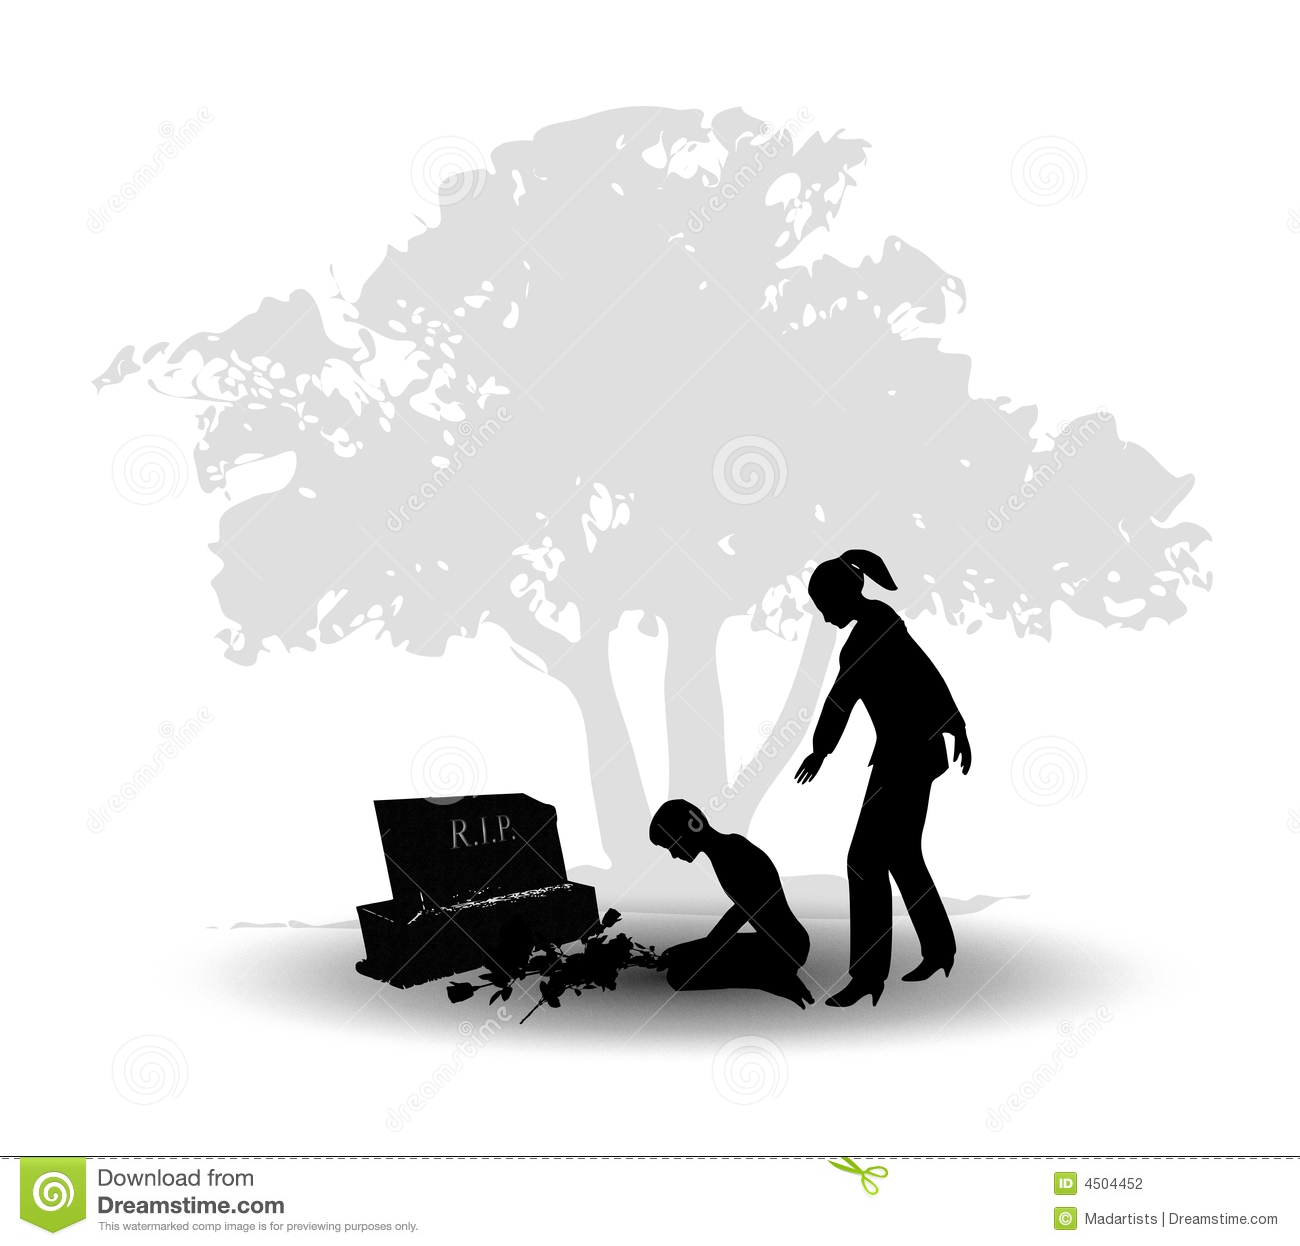 Emotional clipart grief Cliparts Loss Clipart Grieving